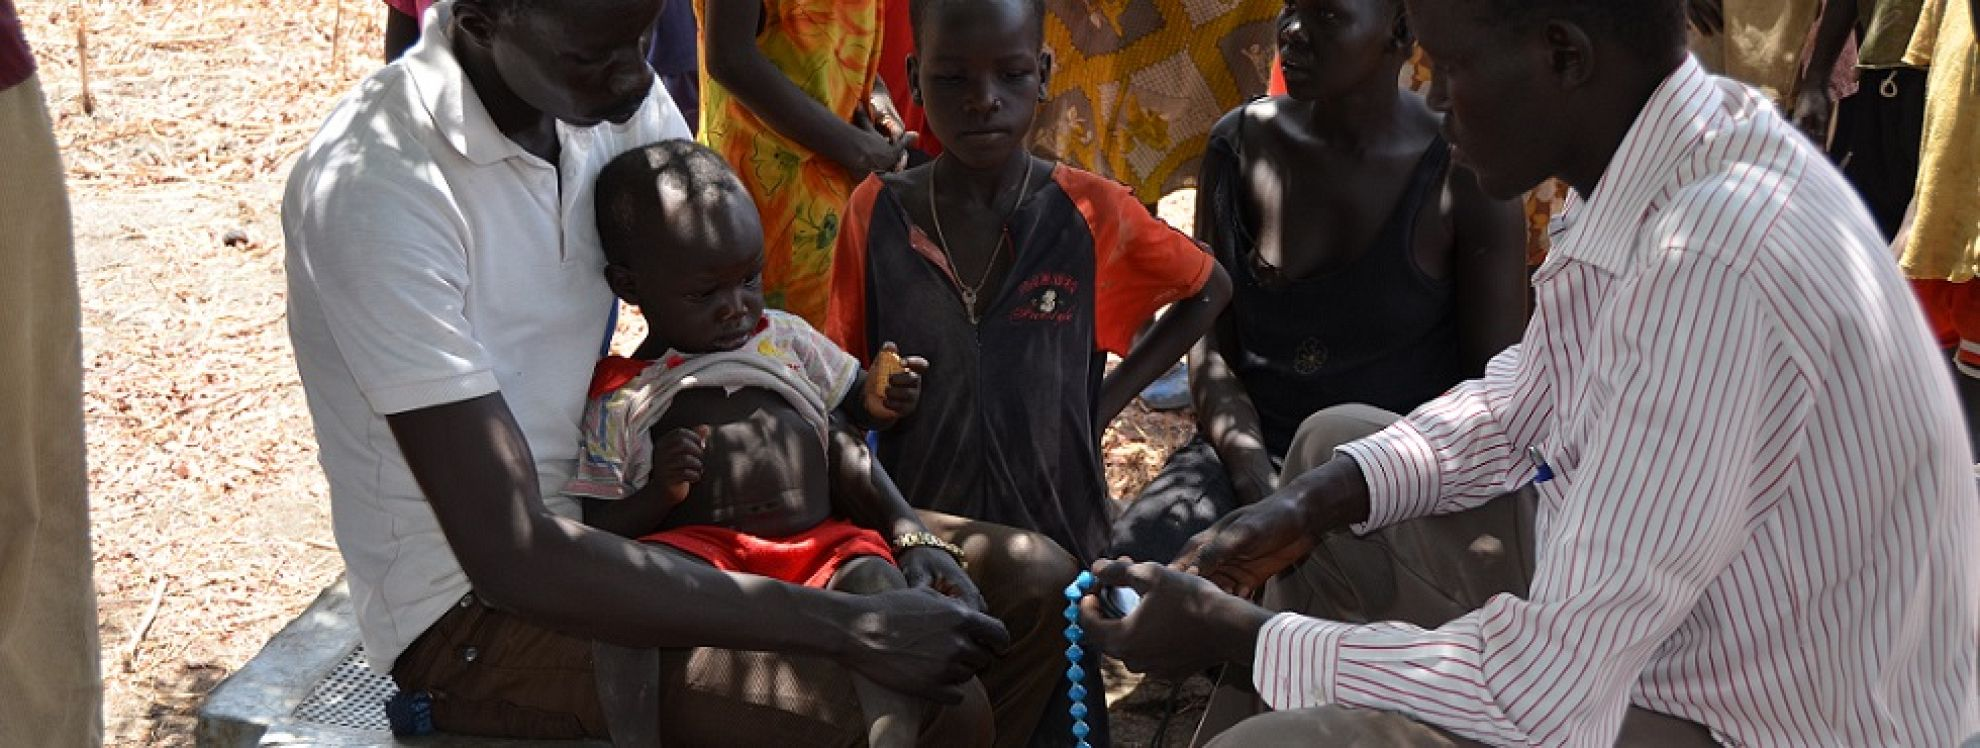 Latest News Sharing progress and lessons learnt from the pneumonia diagnostics project in south sudan